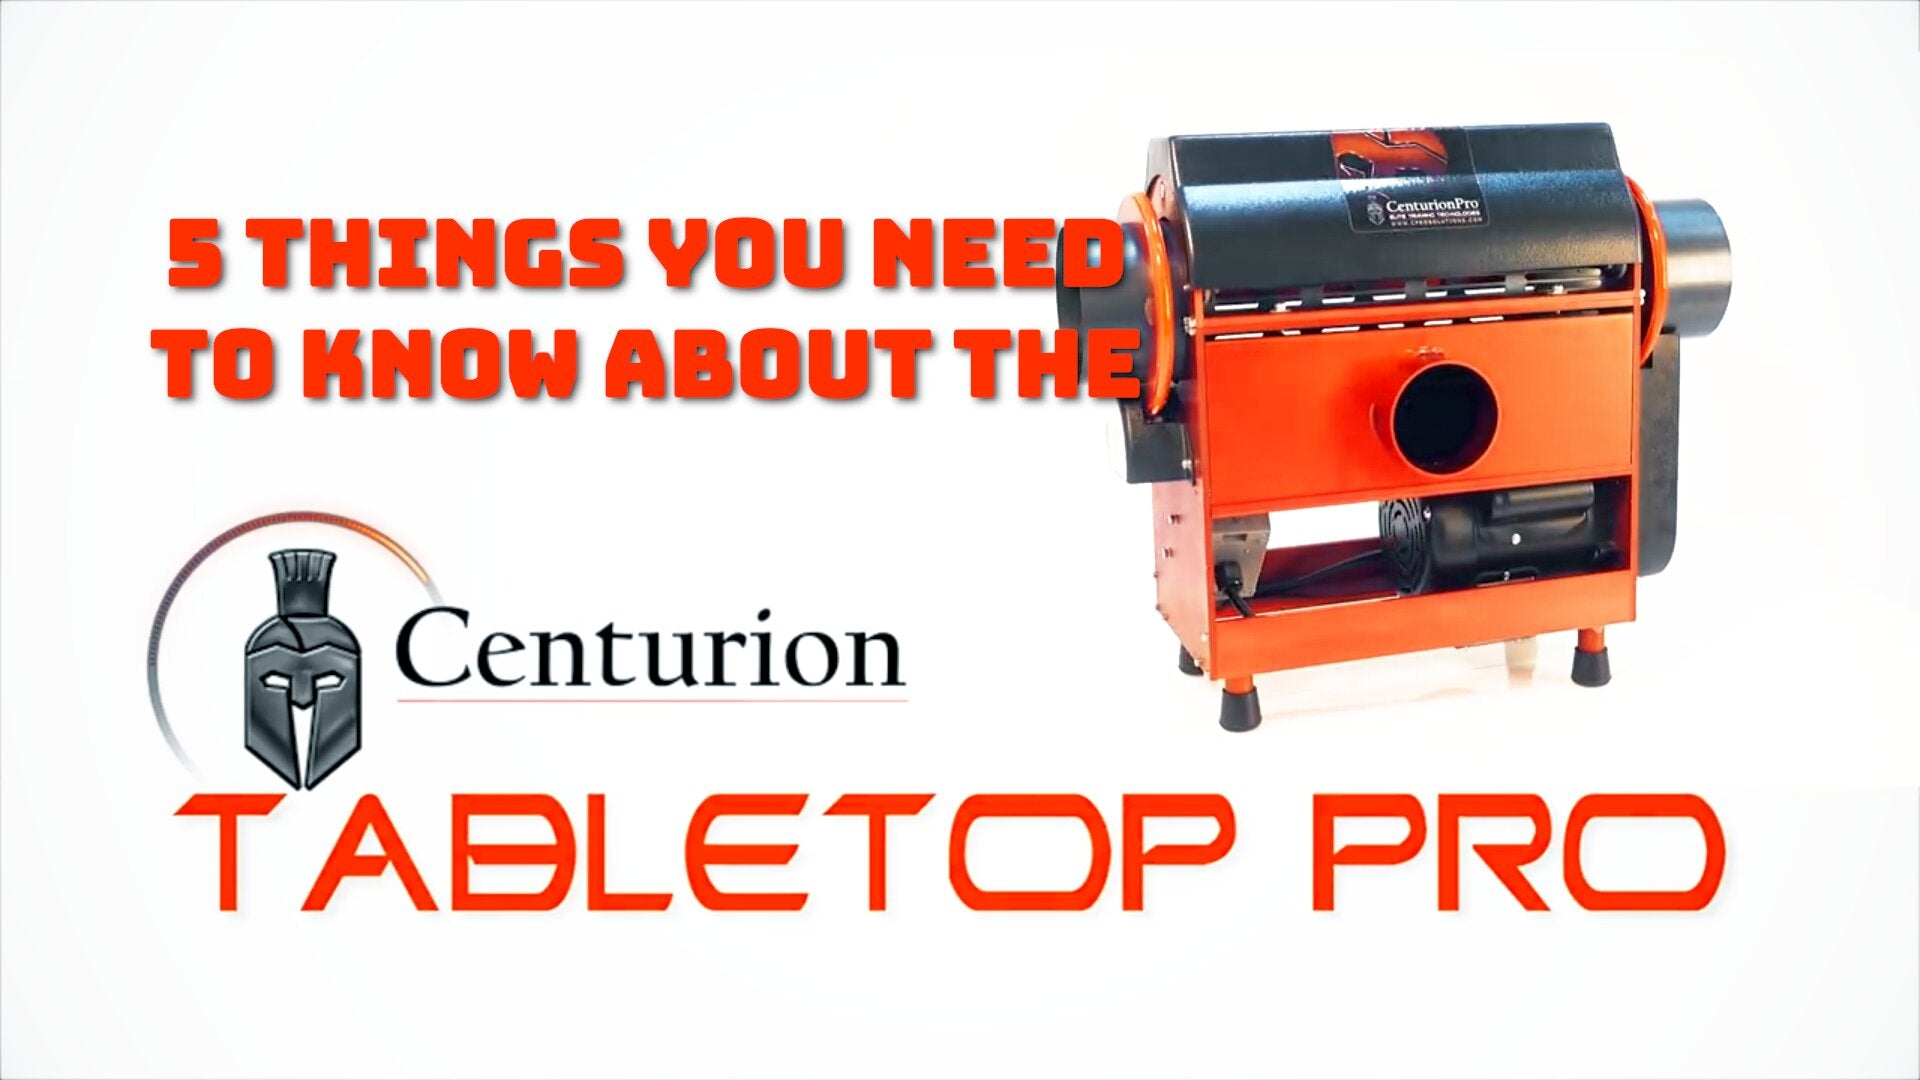 5 Things You Need to Know About the CenturionPro Tabletop Automatic Bud Trimmer